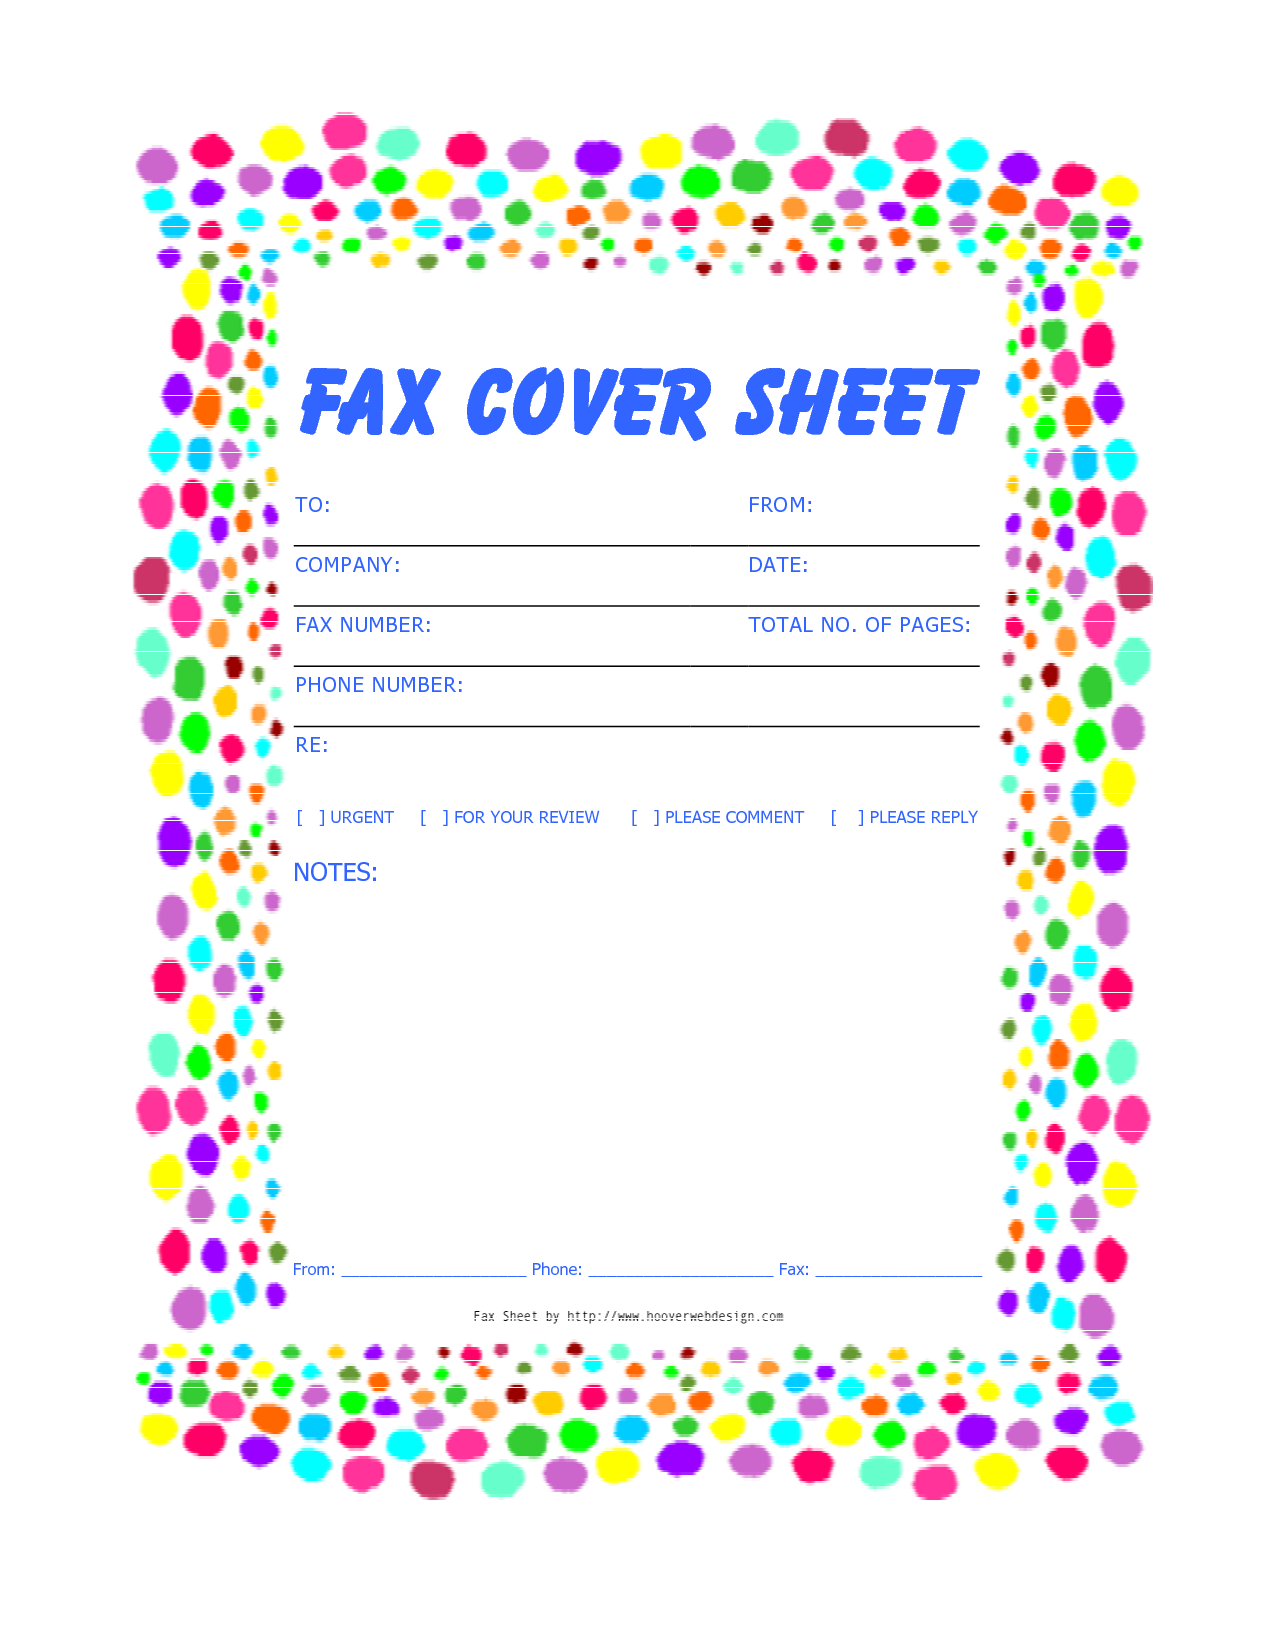 free fax cover sheet template download this site provides templates of free fax cover sheet download professional personal blank printable fax cover